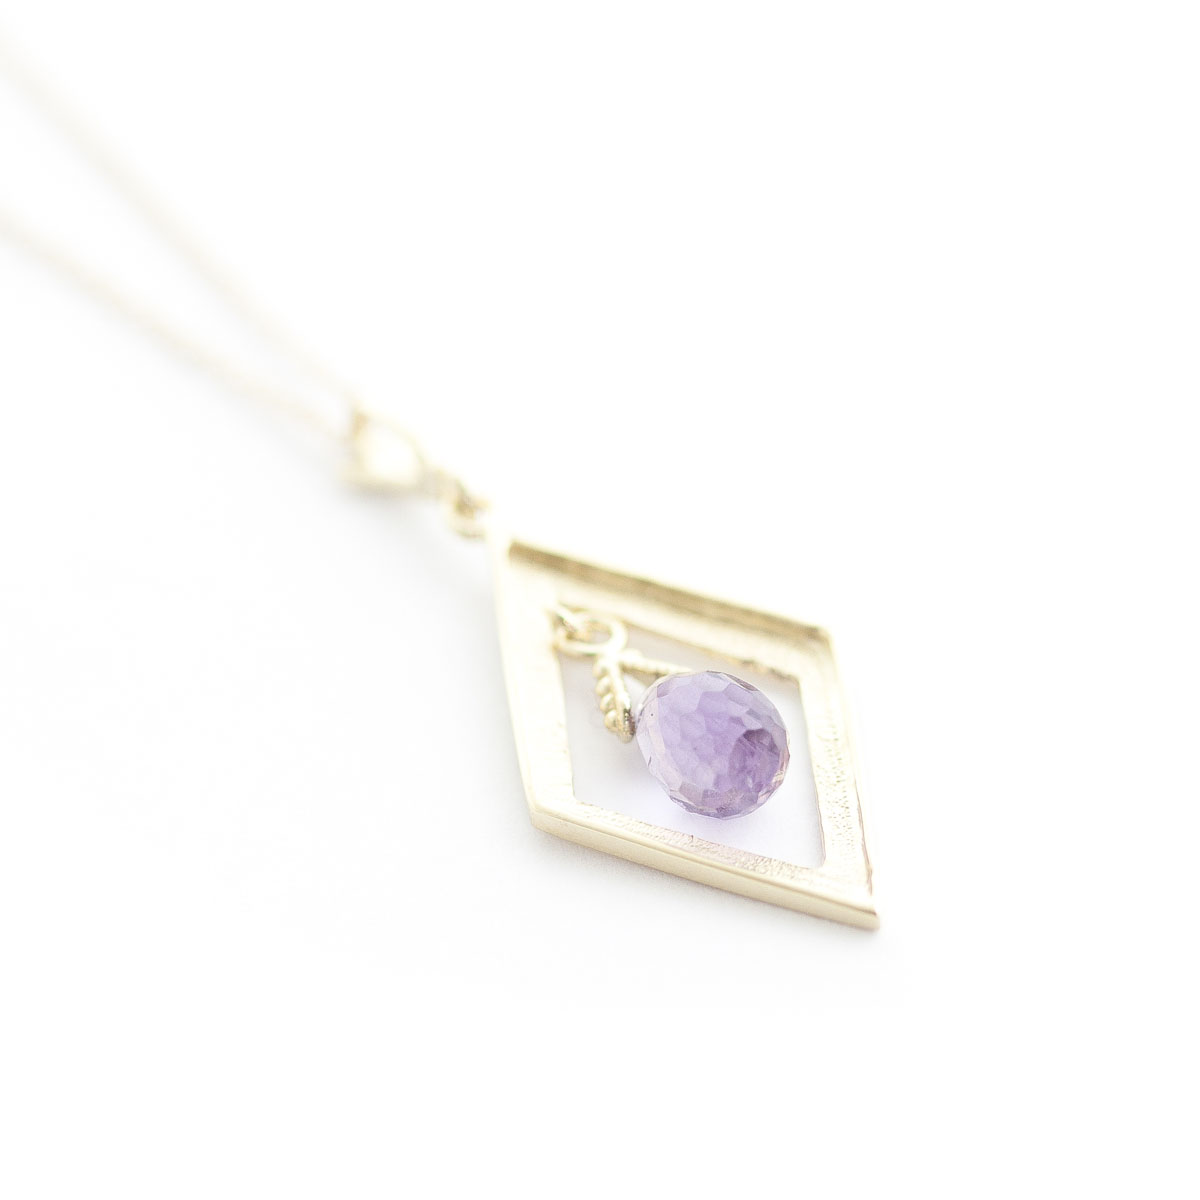 Amethyst Kite Pendant Necklace 0.7 ct in 9ct Gold